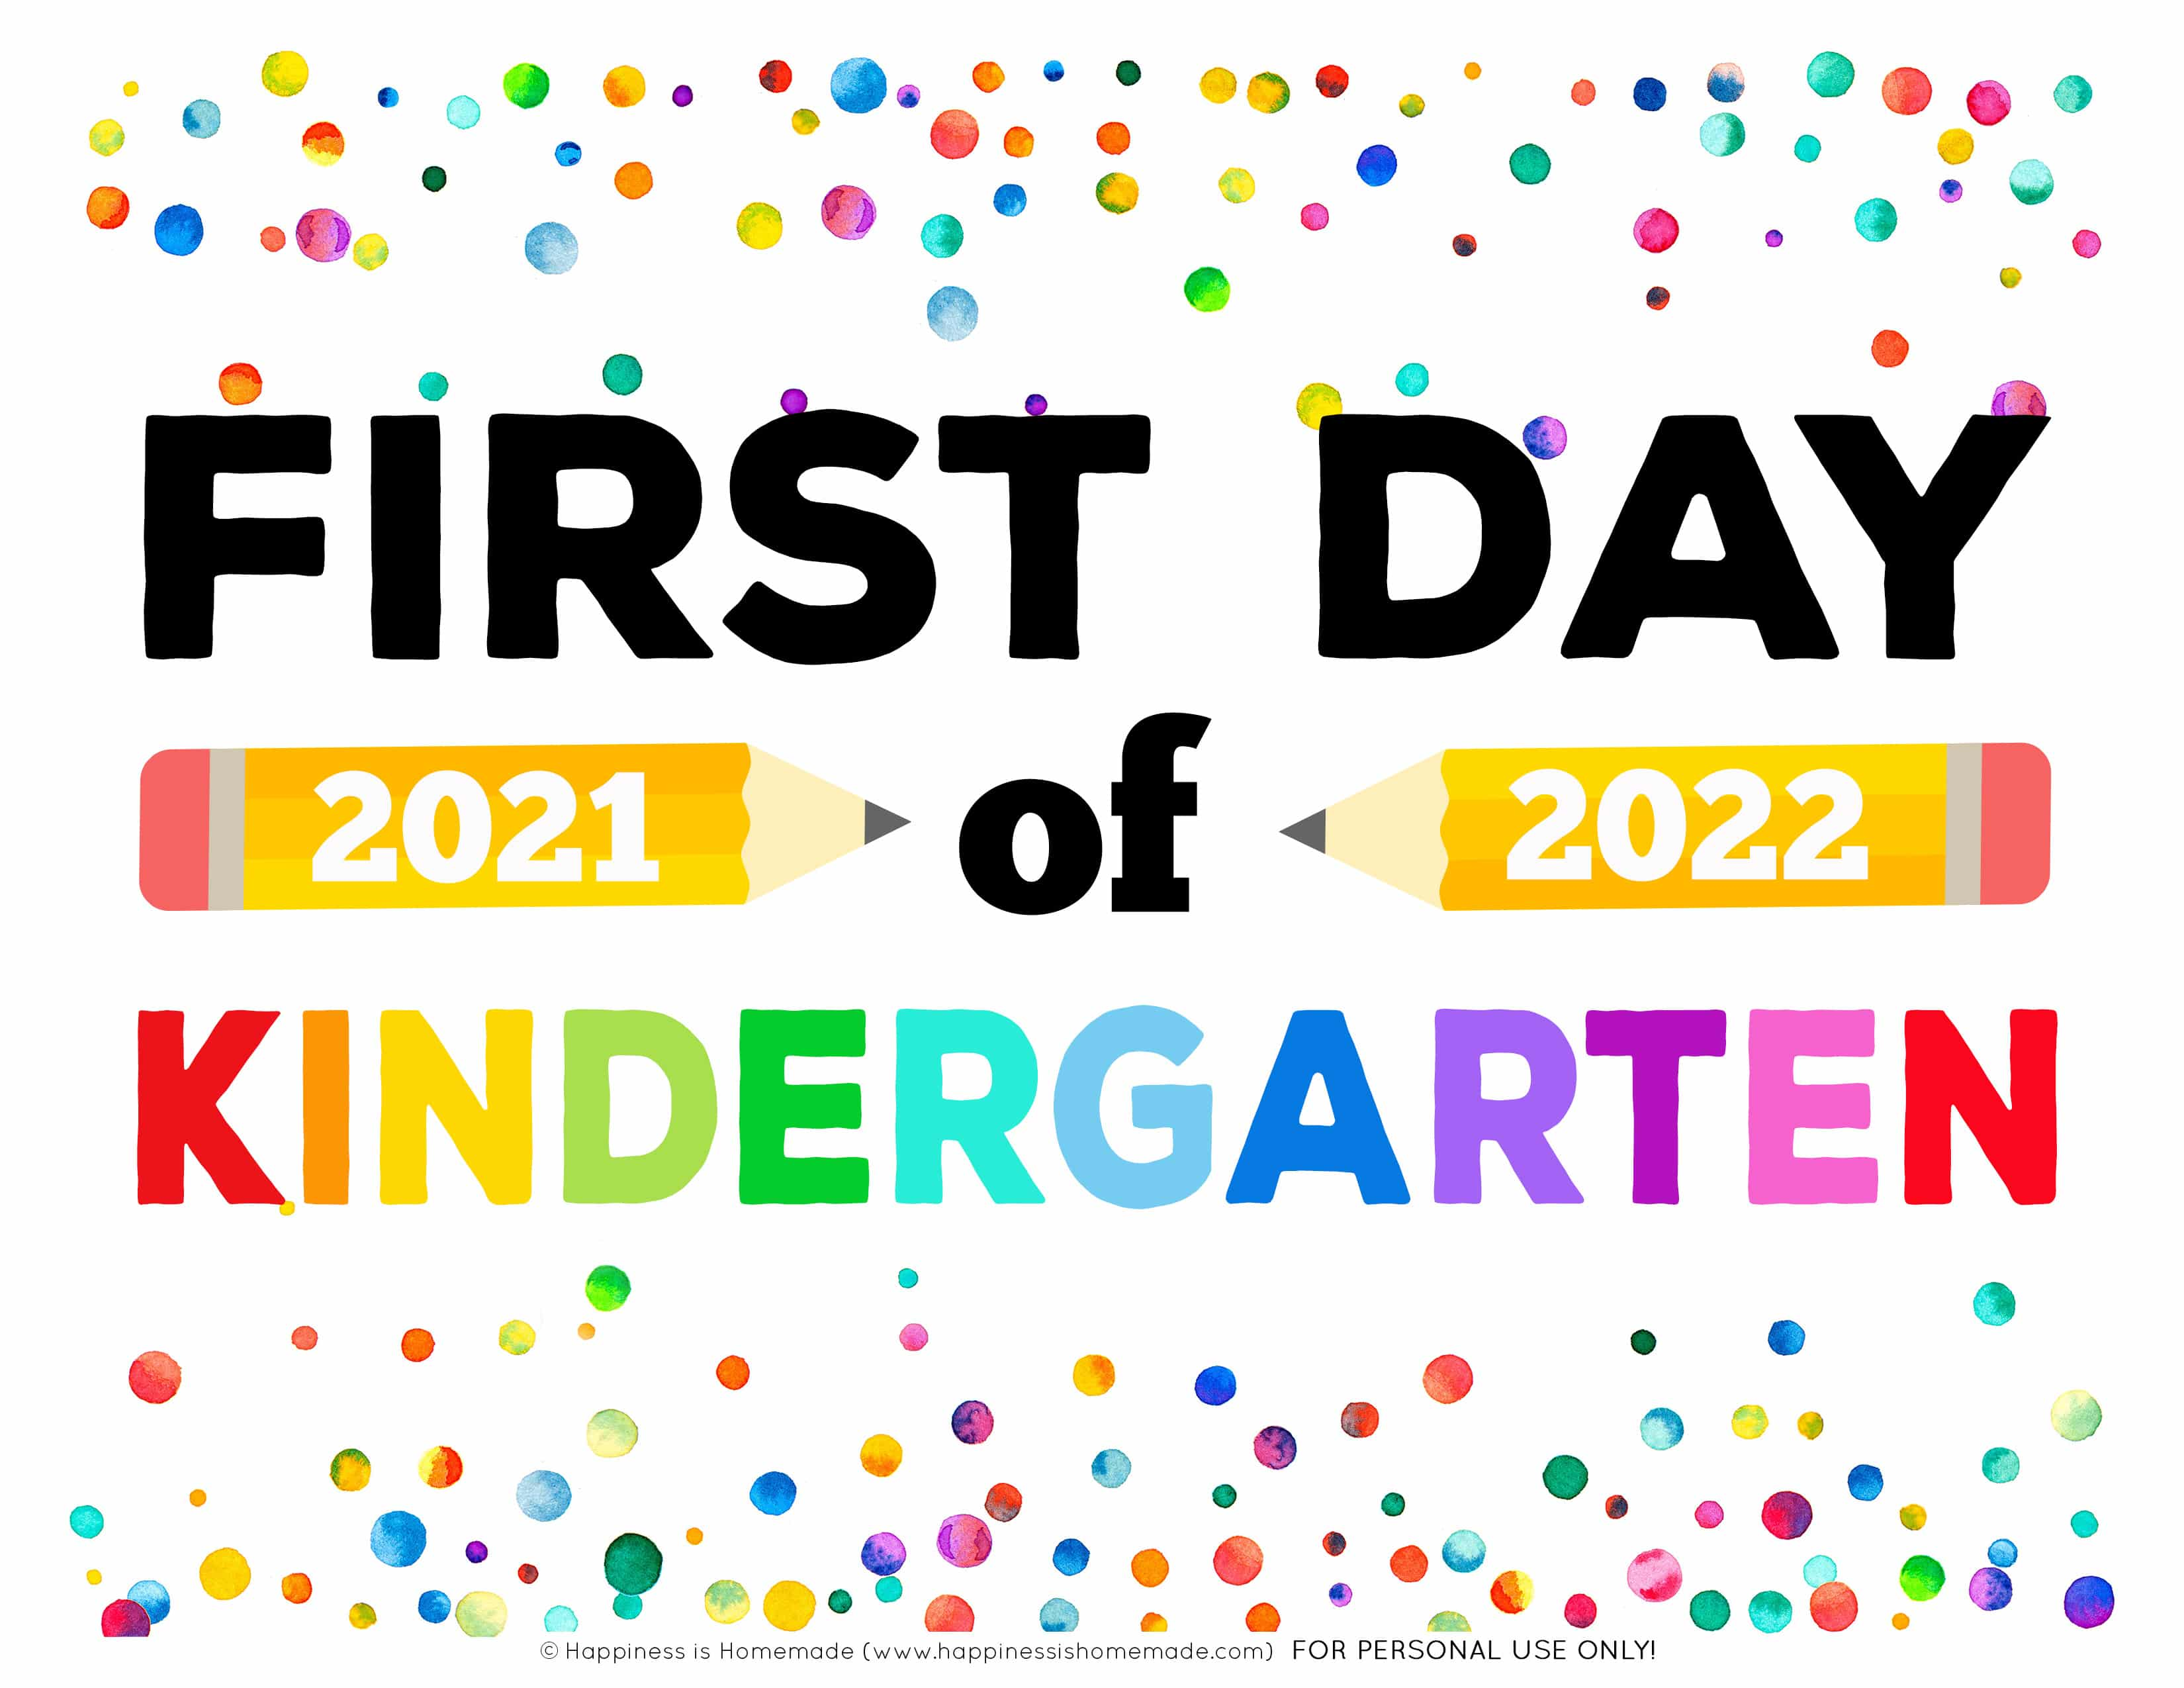 """Free Printable """"First Day of Kindergarten 2021 - 2022"""" Sign with pencils and rainbow colors"""